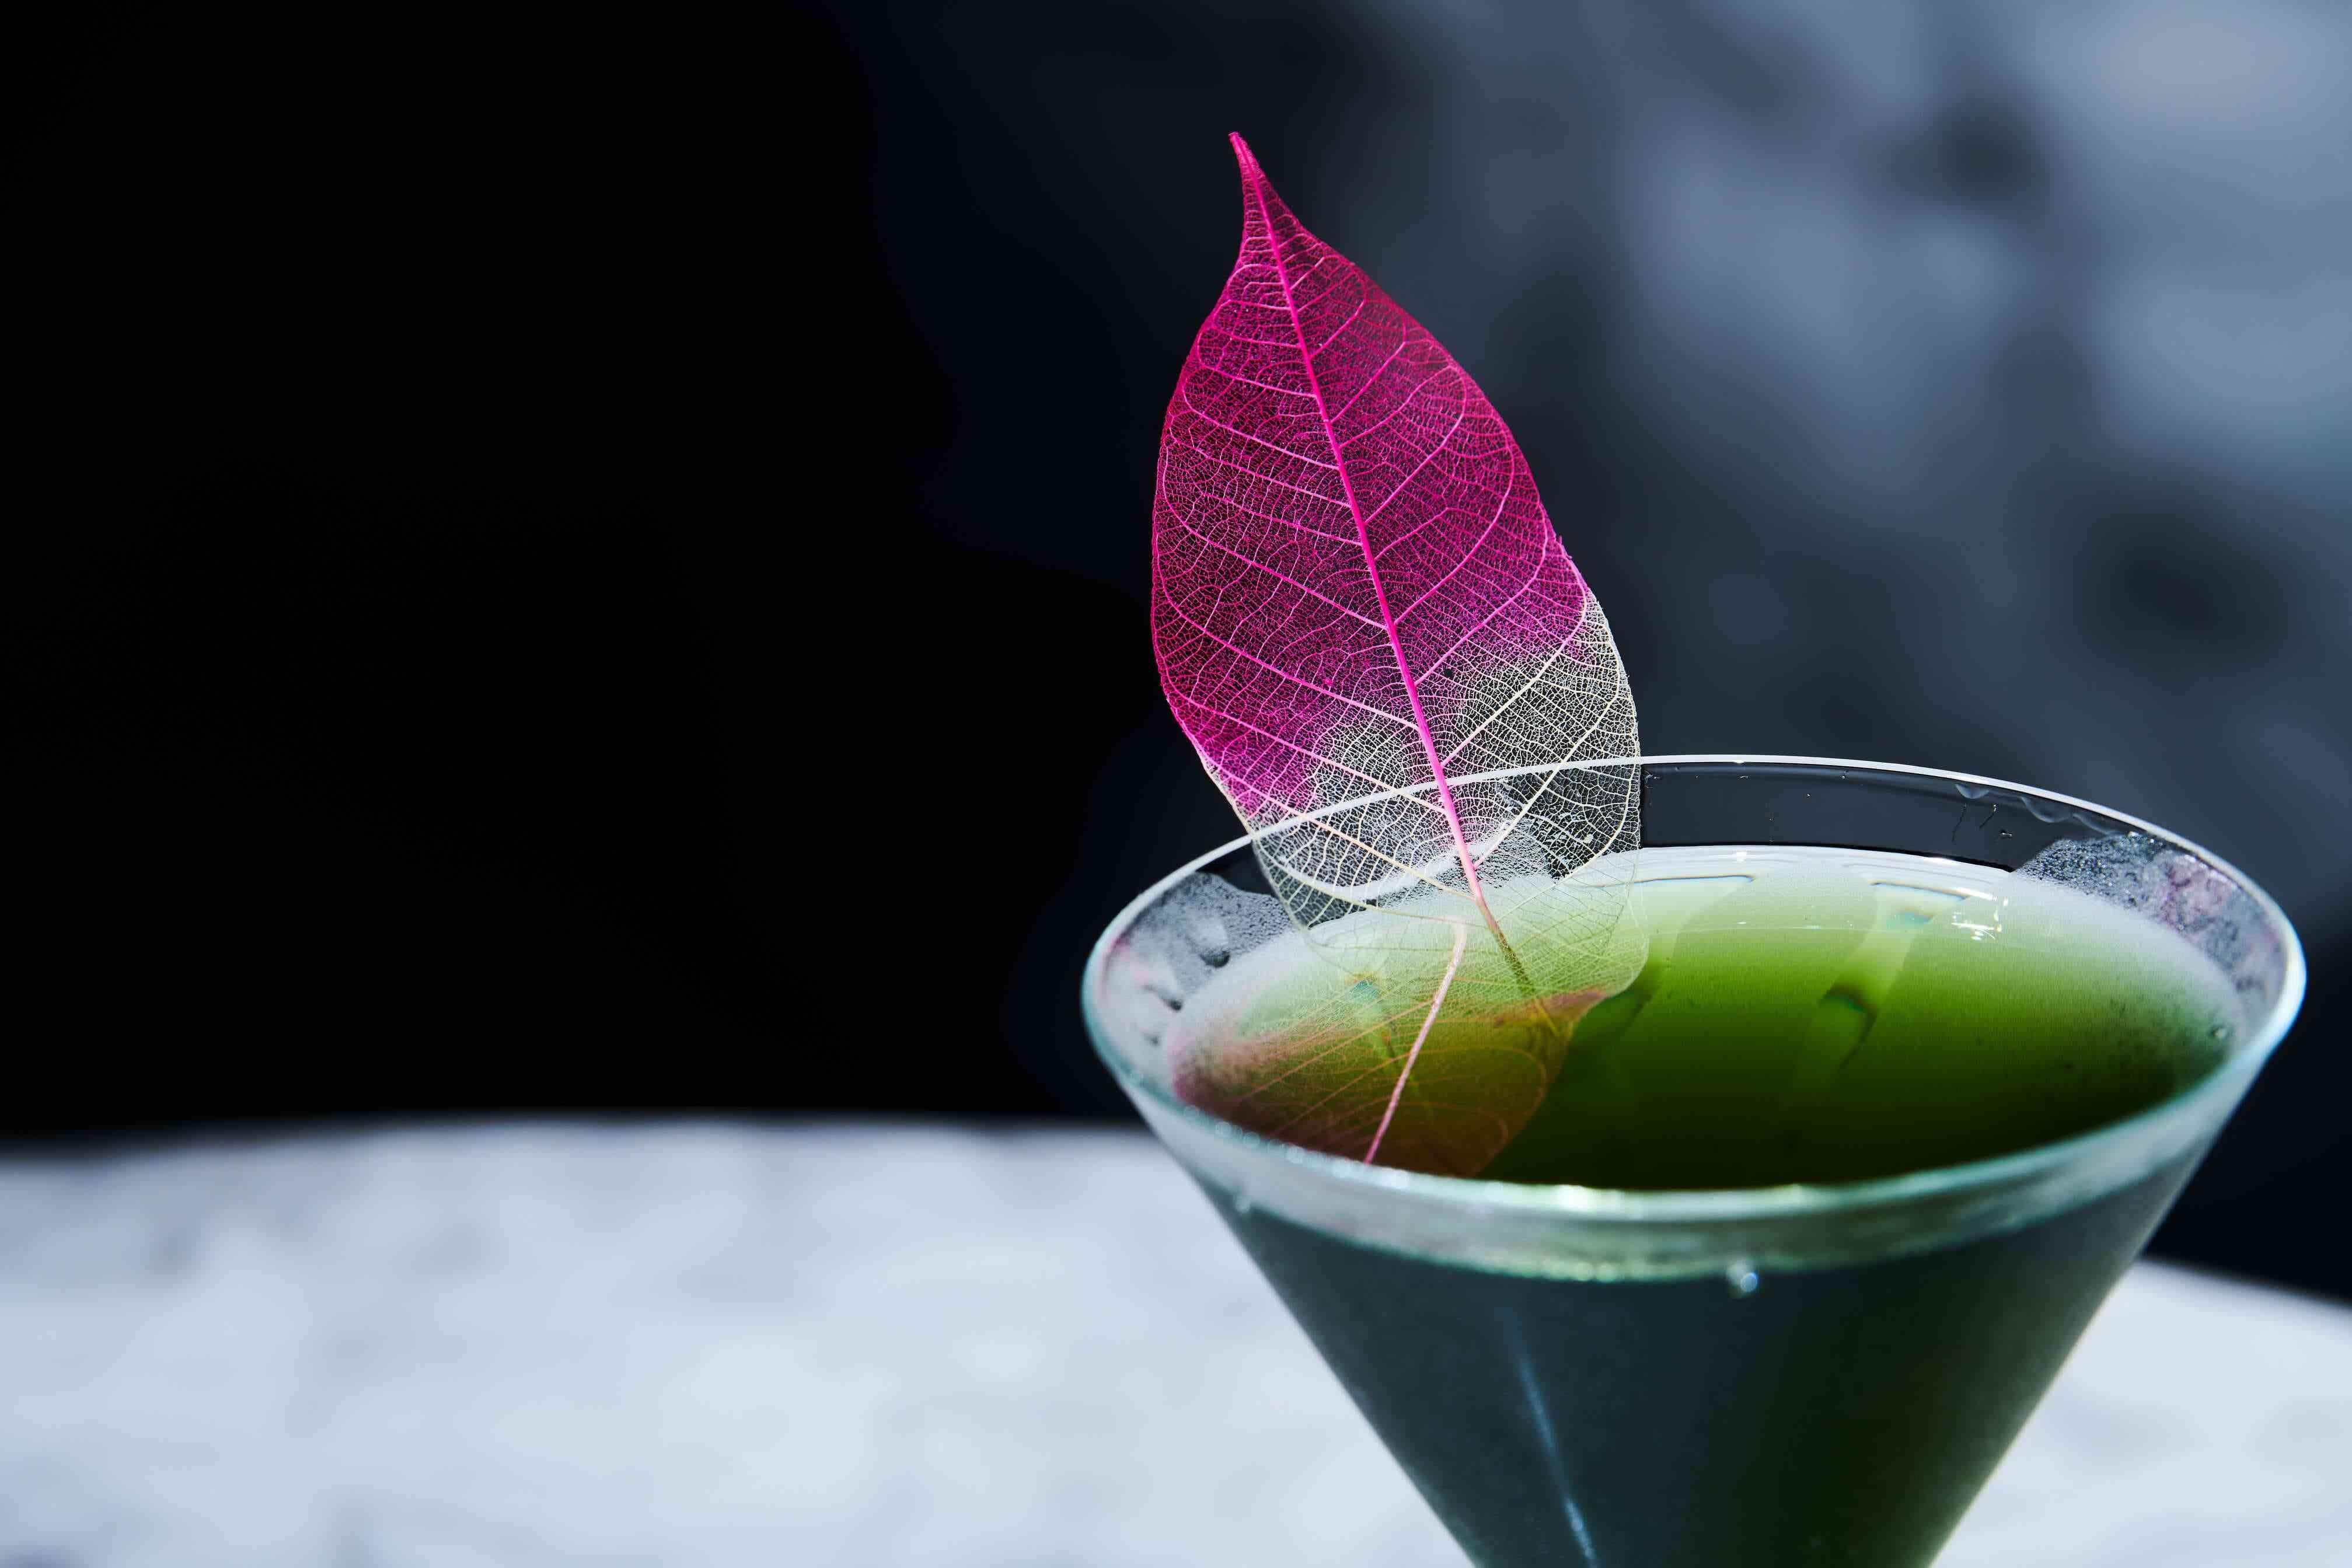 Green cocktail with Pink & White leaf